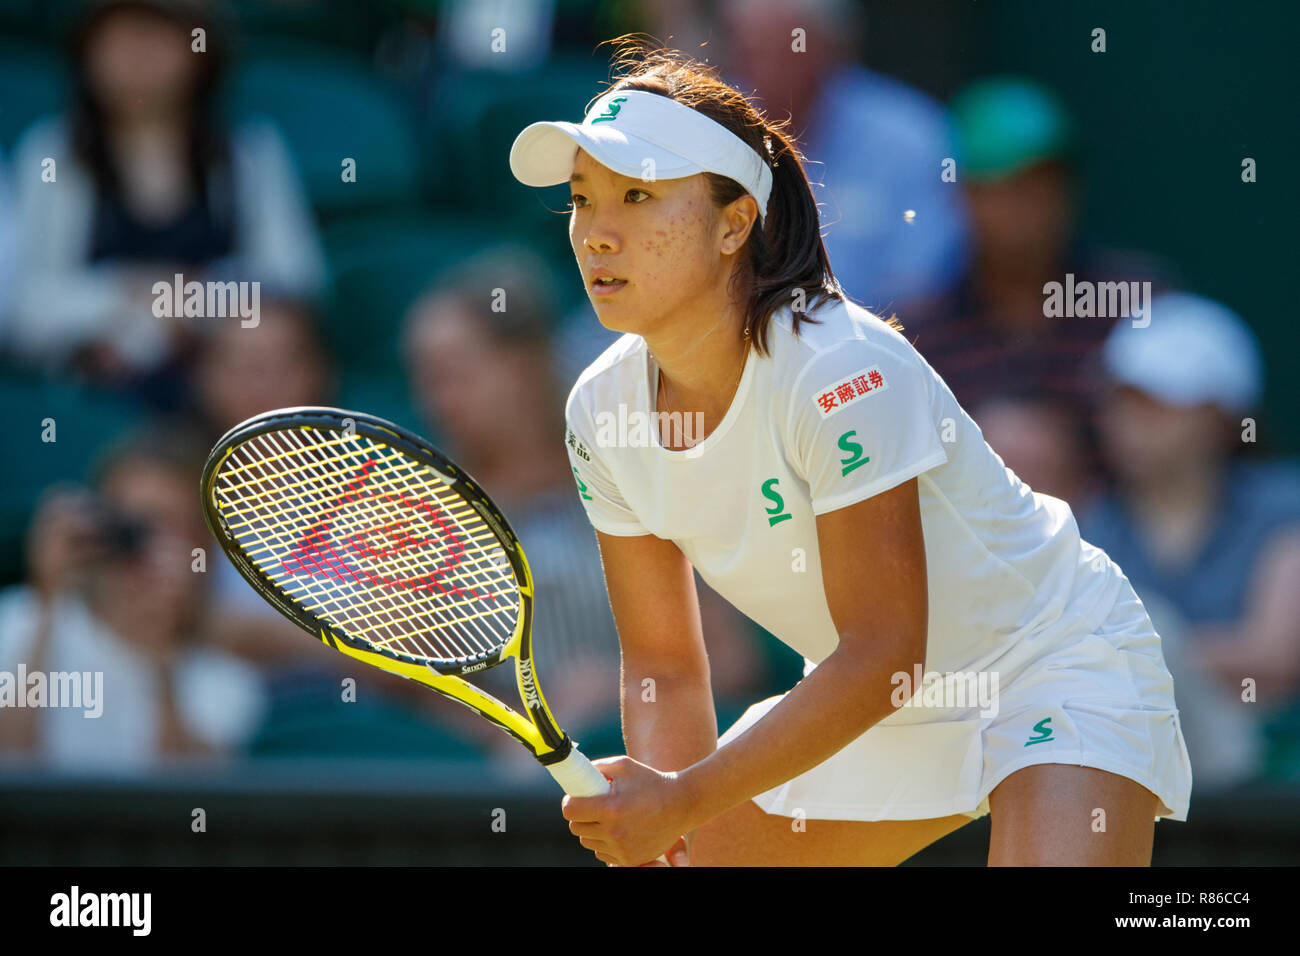 Tennis JapaneseStock Photos and Images